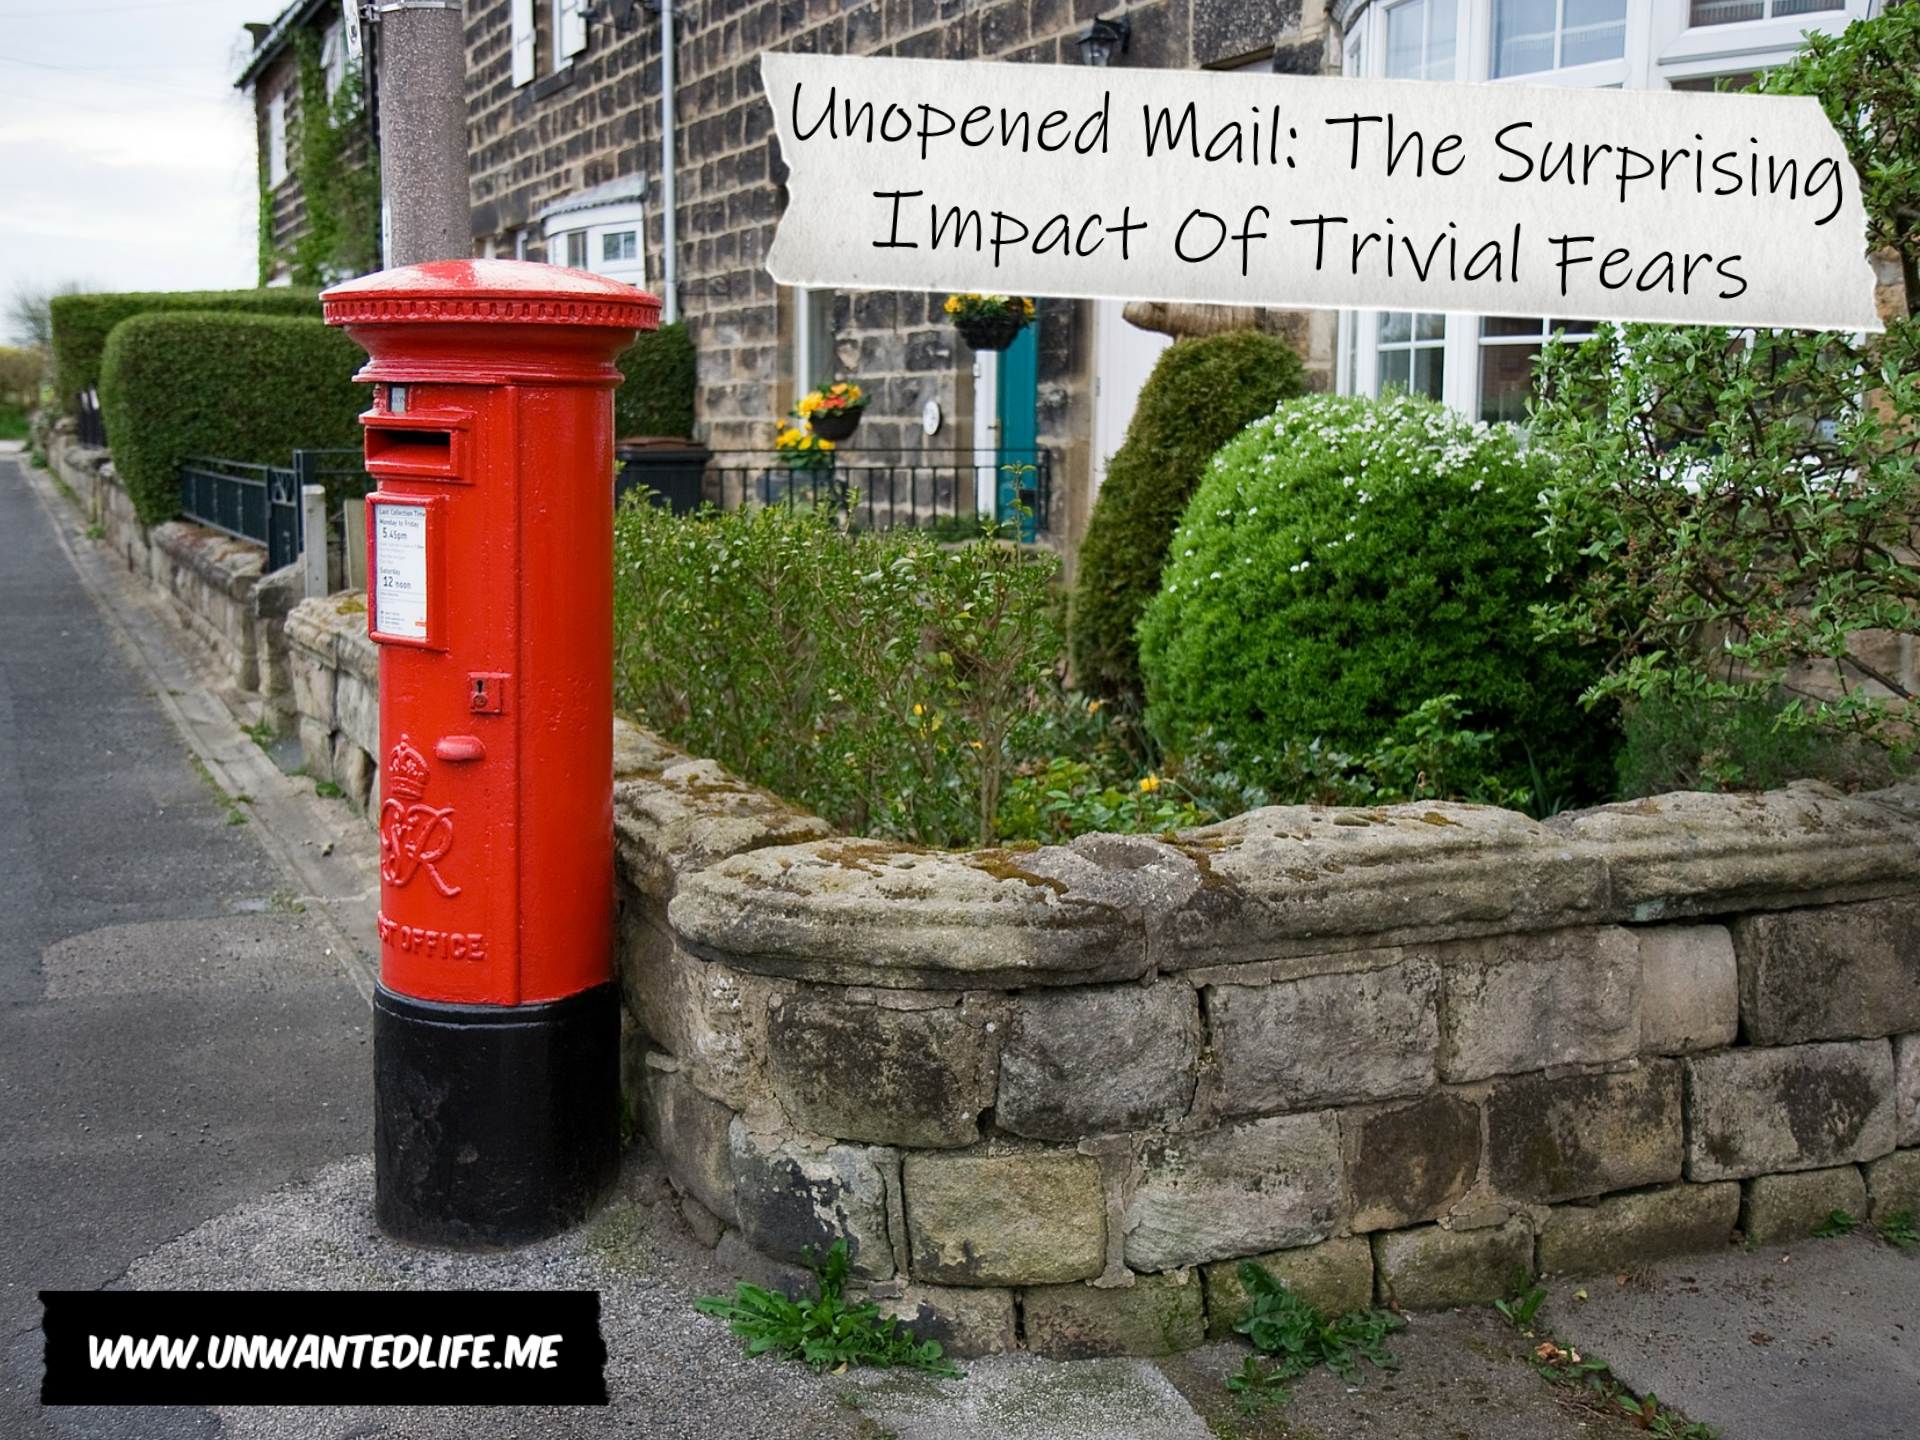 A red British mail box on the corner of a village house, with the title of the article in the top corner - Unopened Mail: The Surprising Impact Of Trivial Fears